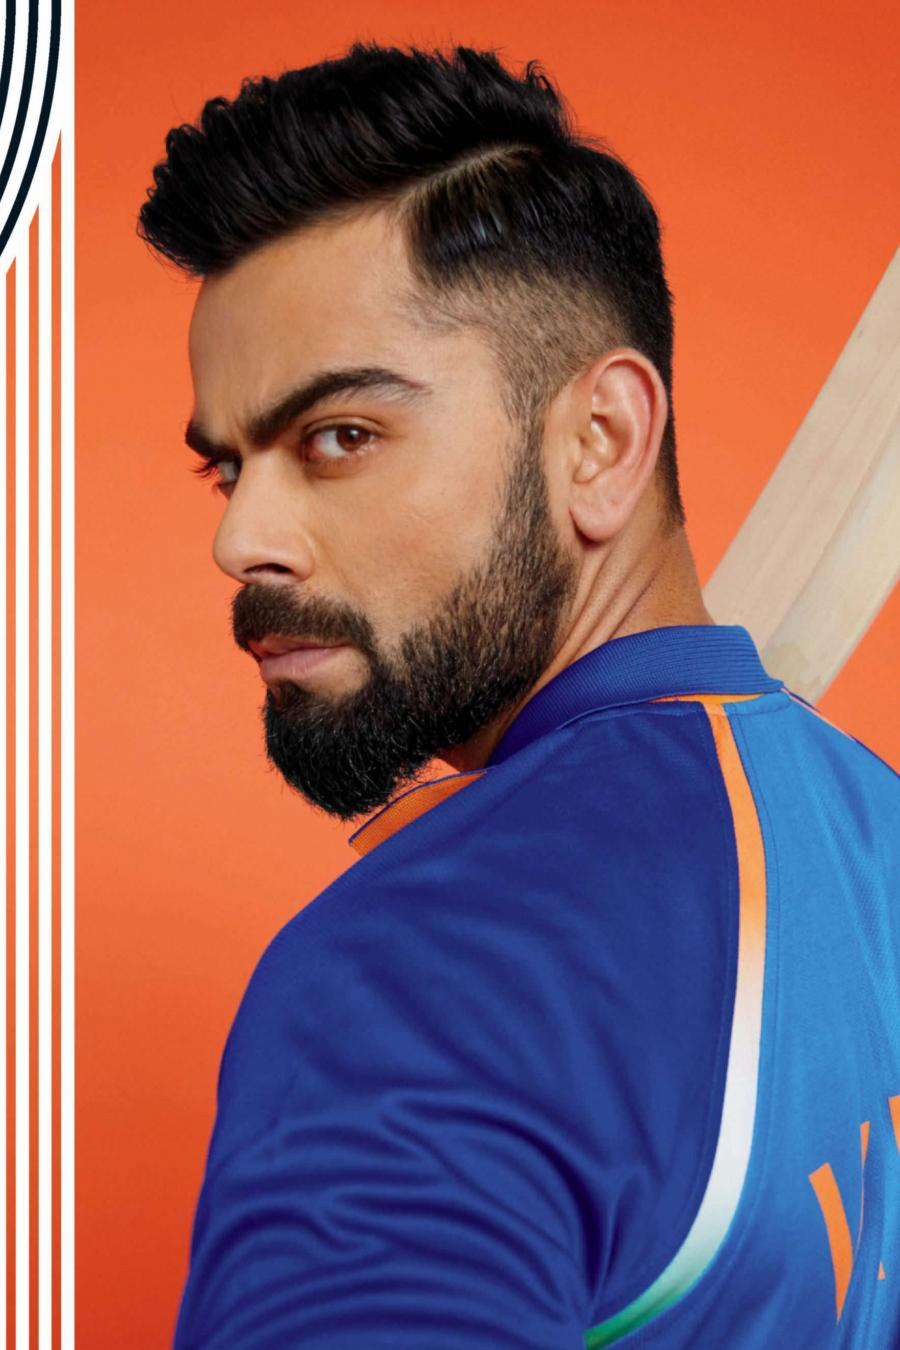 6 Times Virat Kohli Made The Country Proud